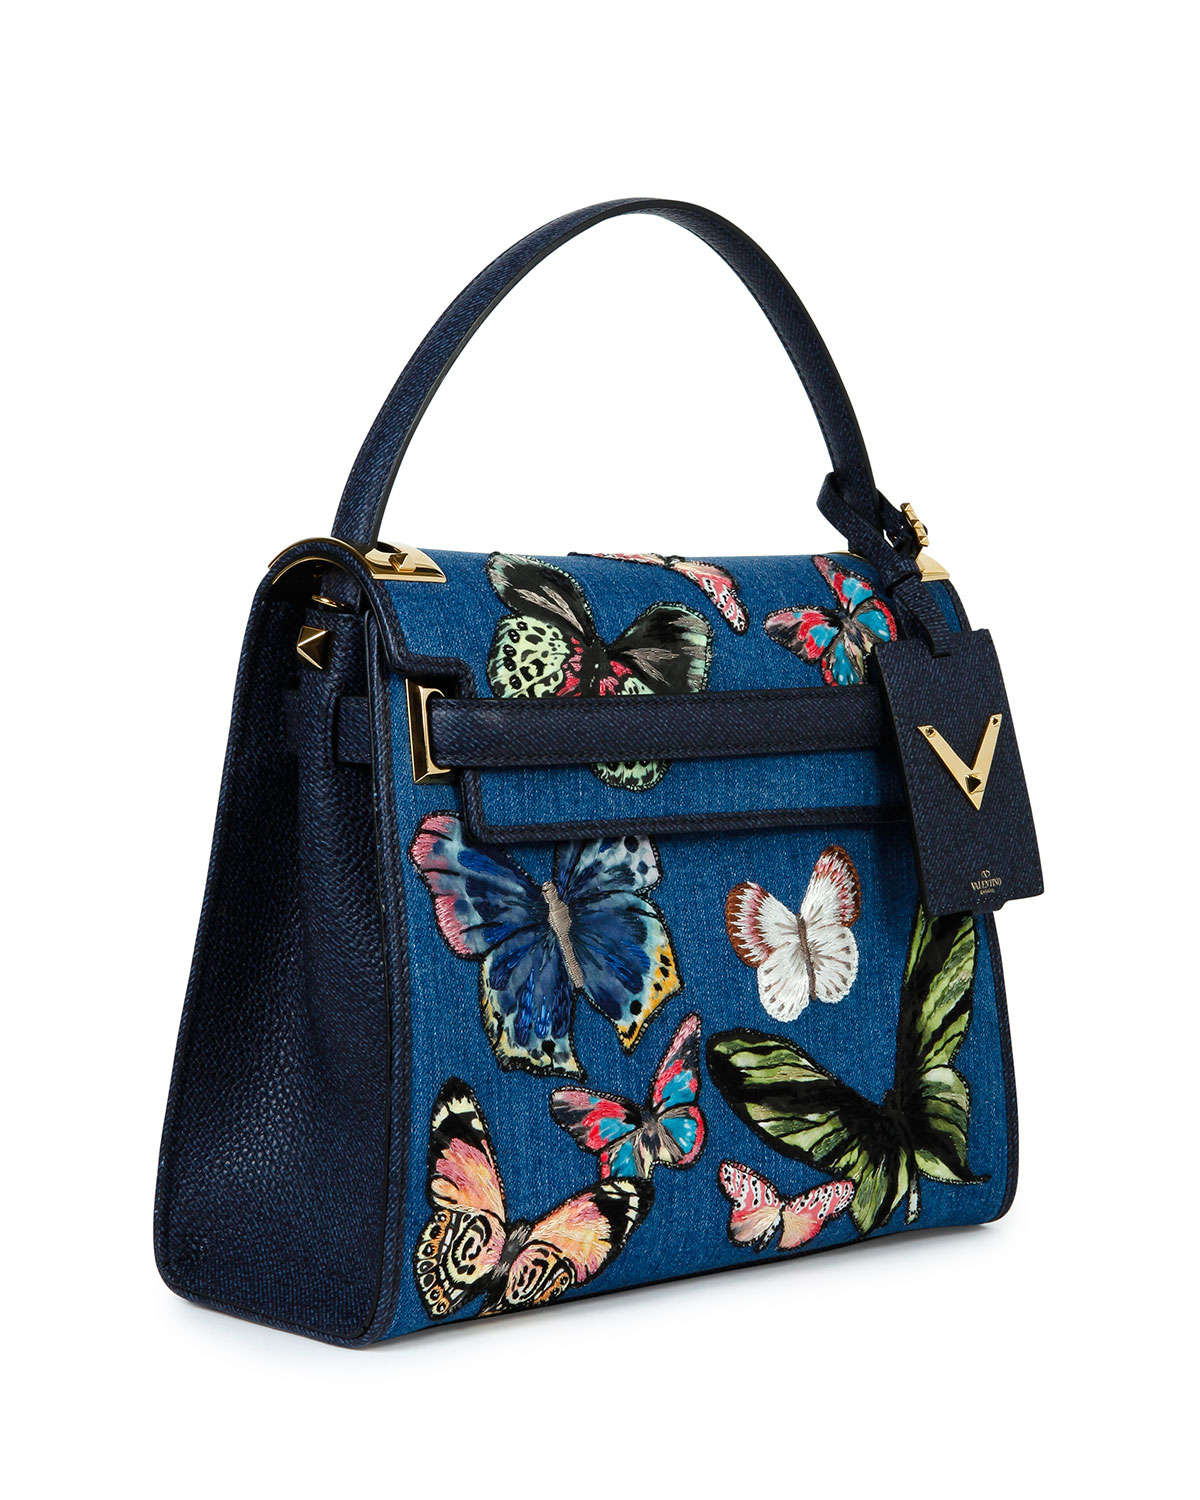 cbbc50d4e49a Gallery. Previously sold at  Neiman Marcus · Women s Valentino Rockstud Bags